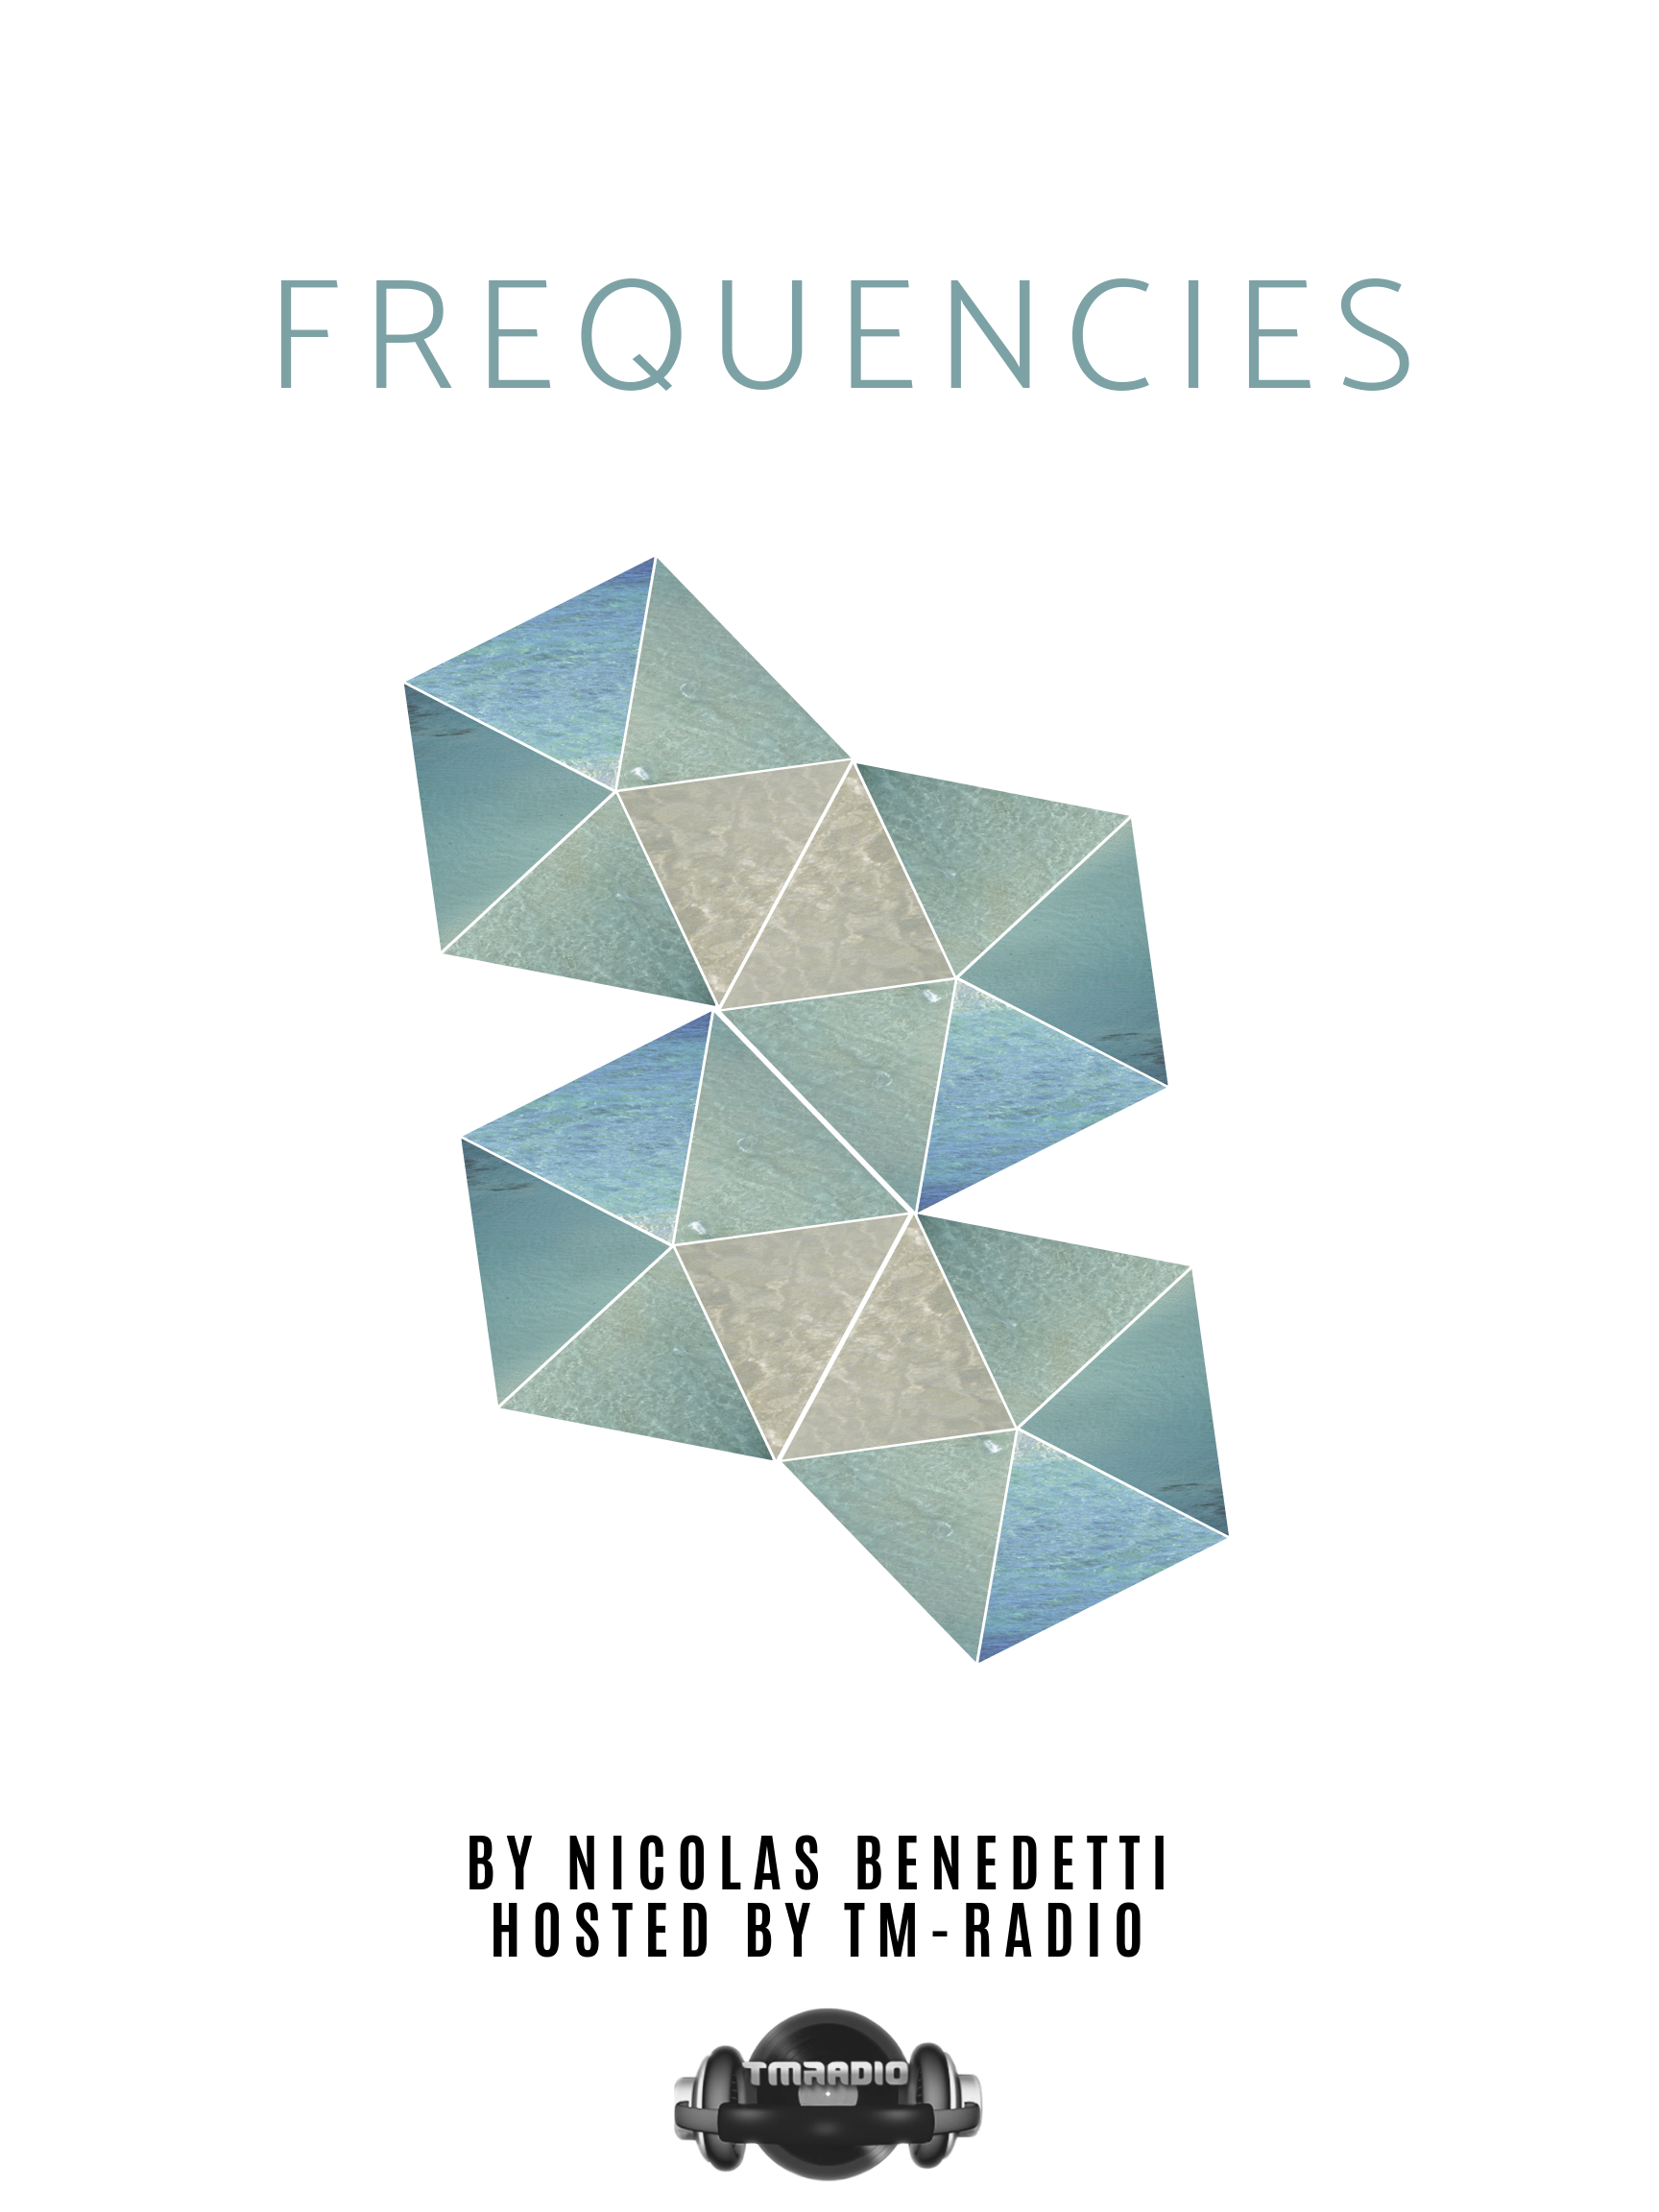 Frequencies :: Nicolas Benedetti - Frequencies 018 - December ´20 (aired on December 18th, 2020) banner logo